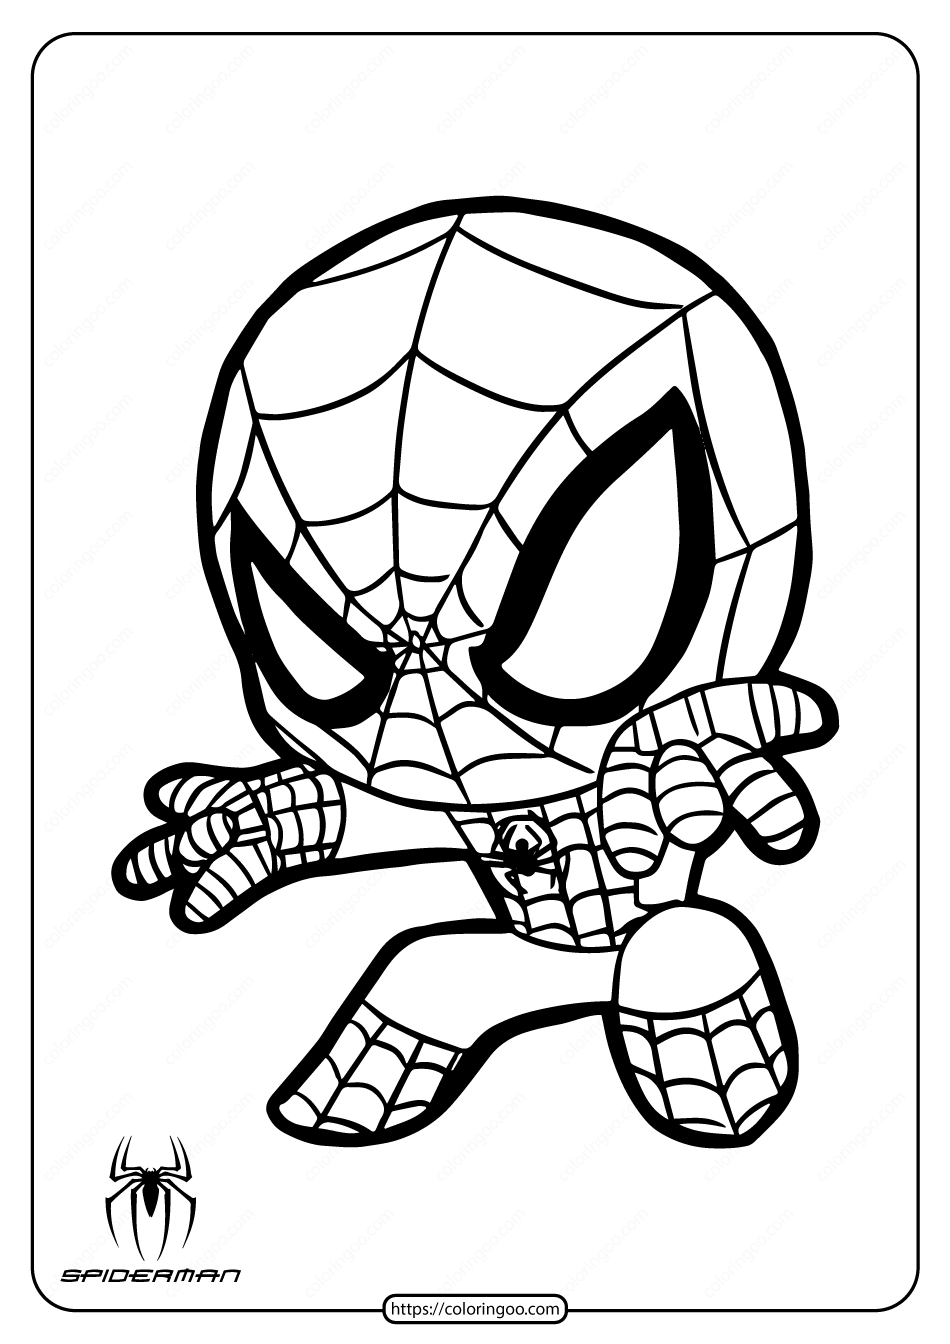 coloring spiderman color coloring pages spiderman free printable coloring pages color coloring spiderman